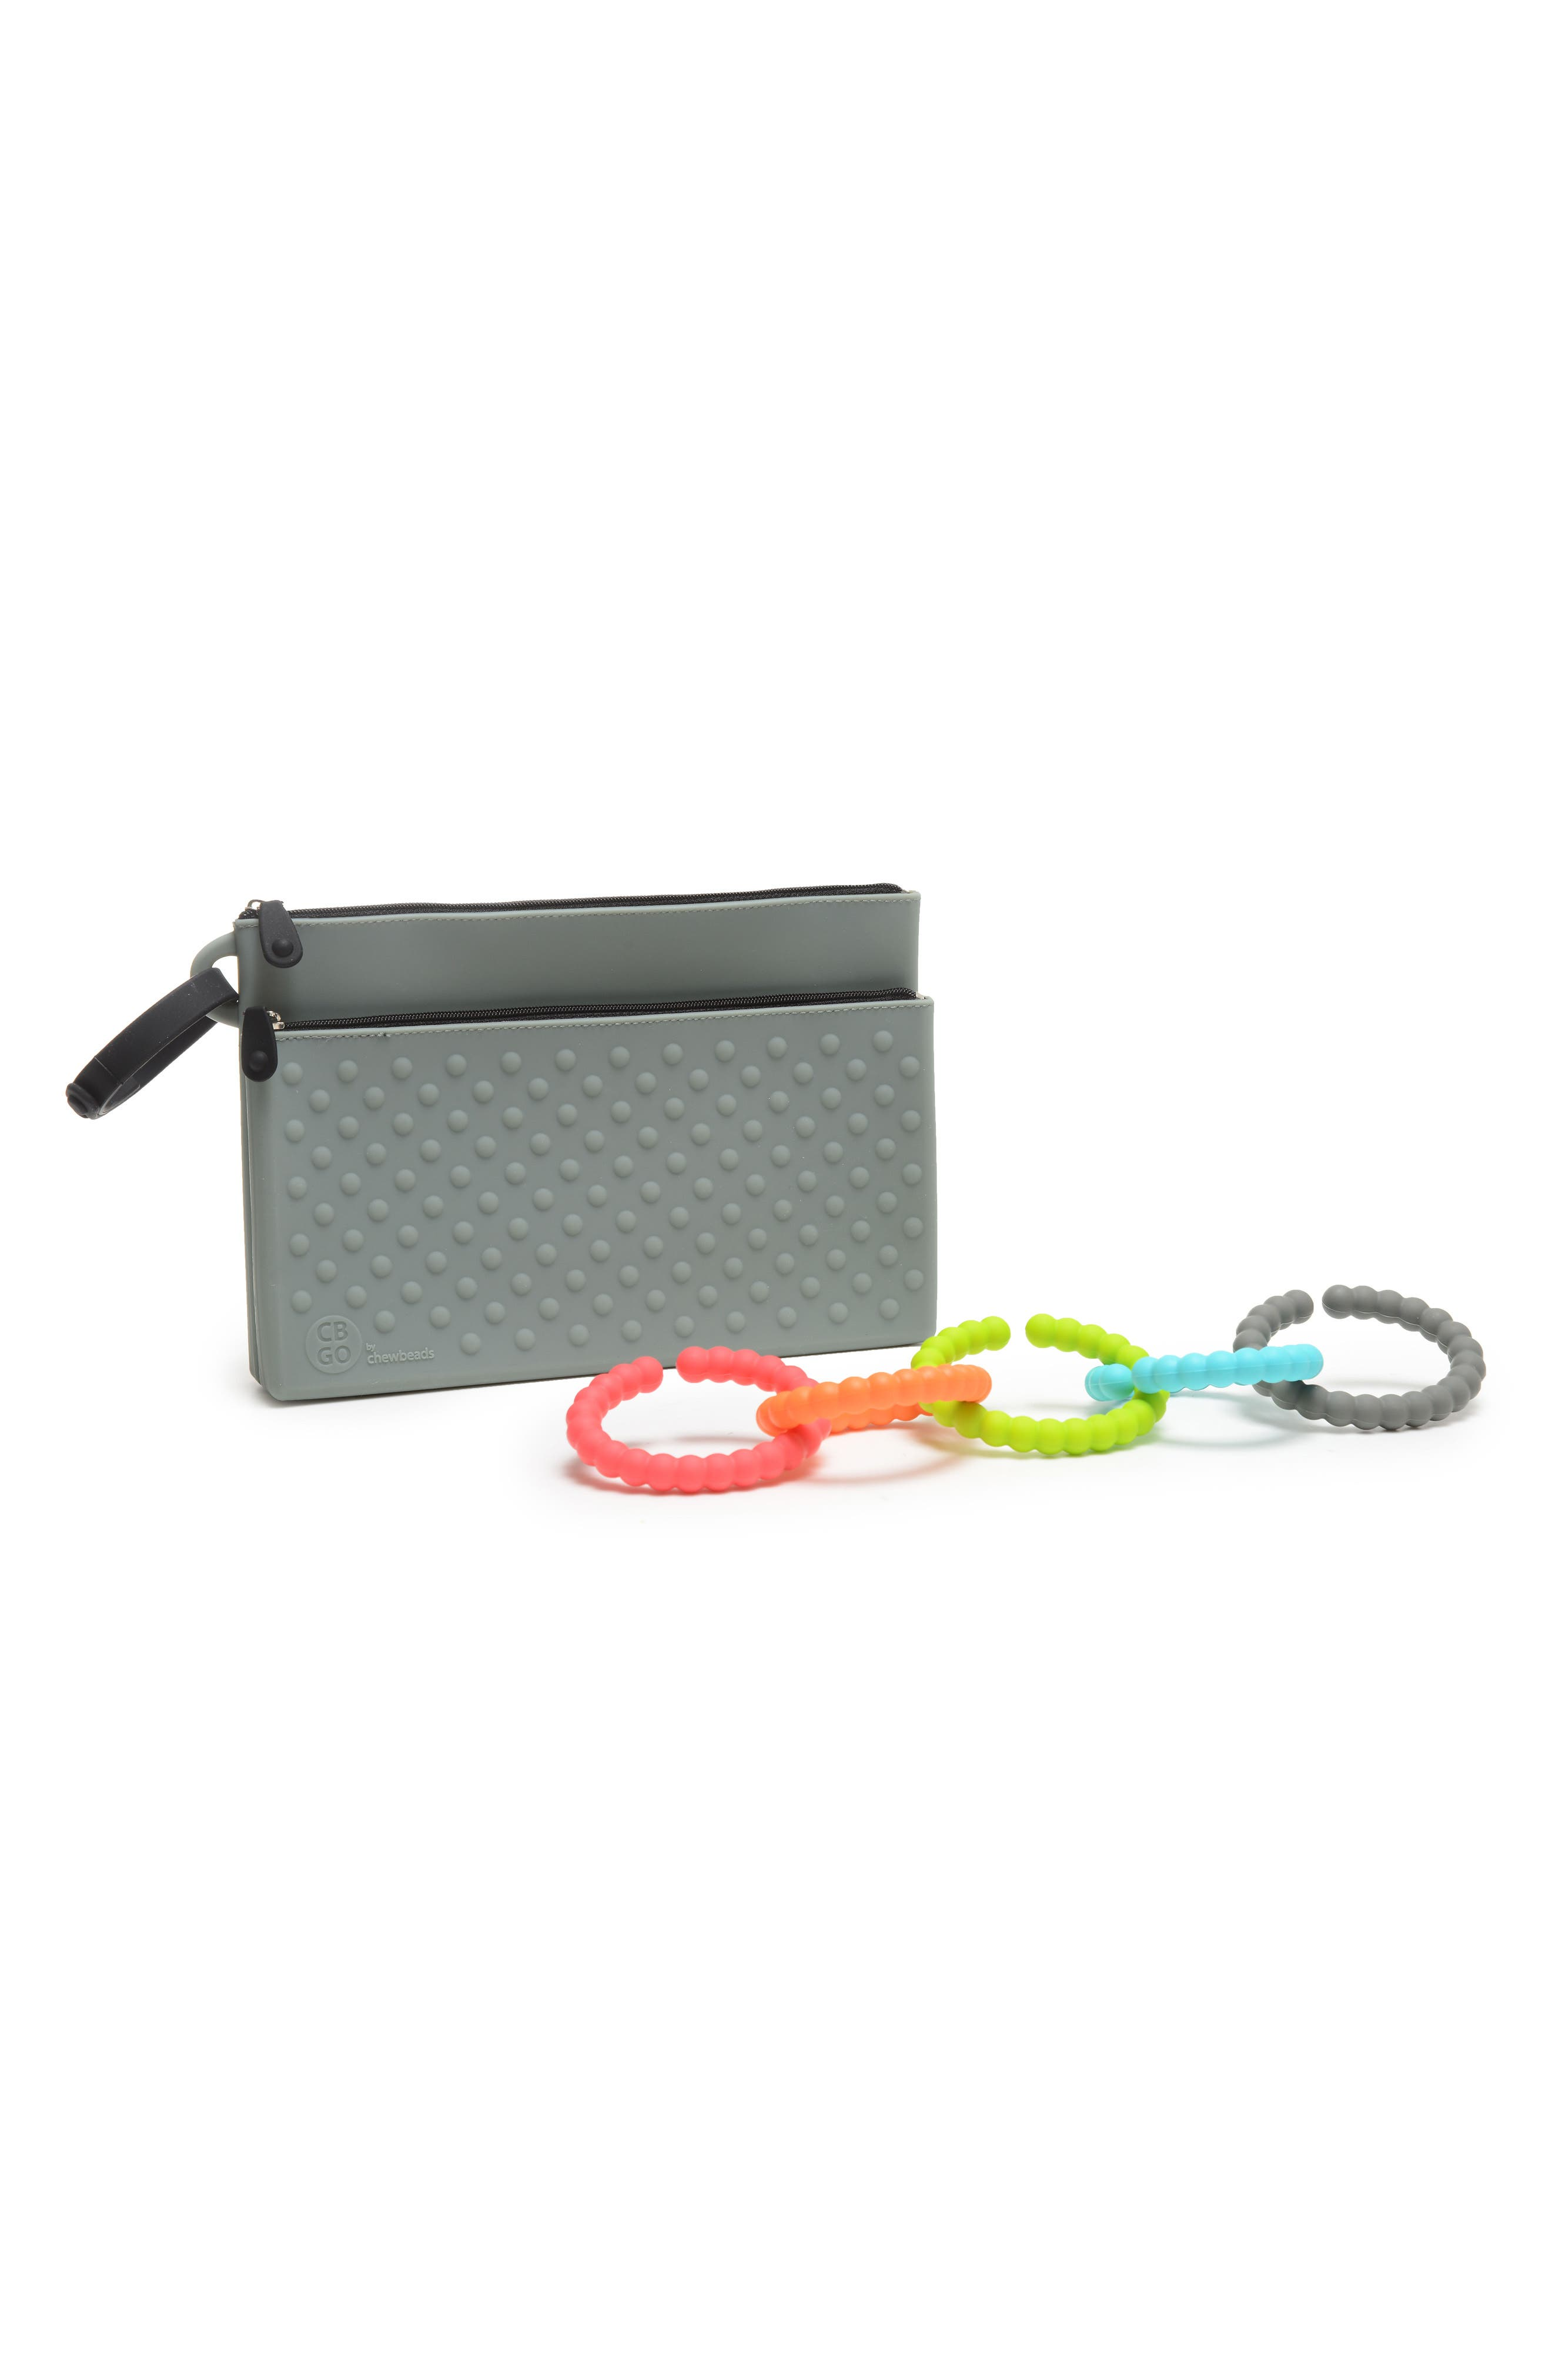 GO Wipes Case & Teething Links Set,                             Main thumbnail 1, color,                             Stormy Grey